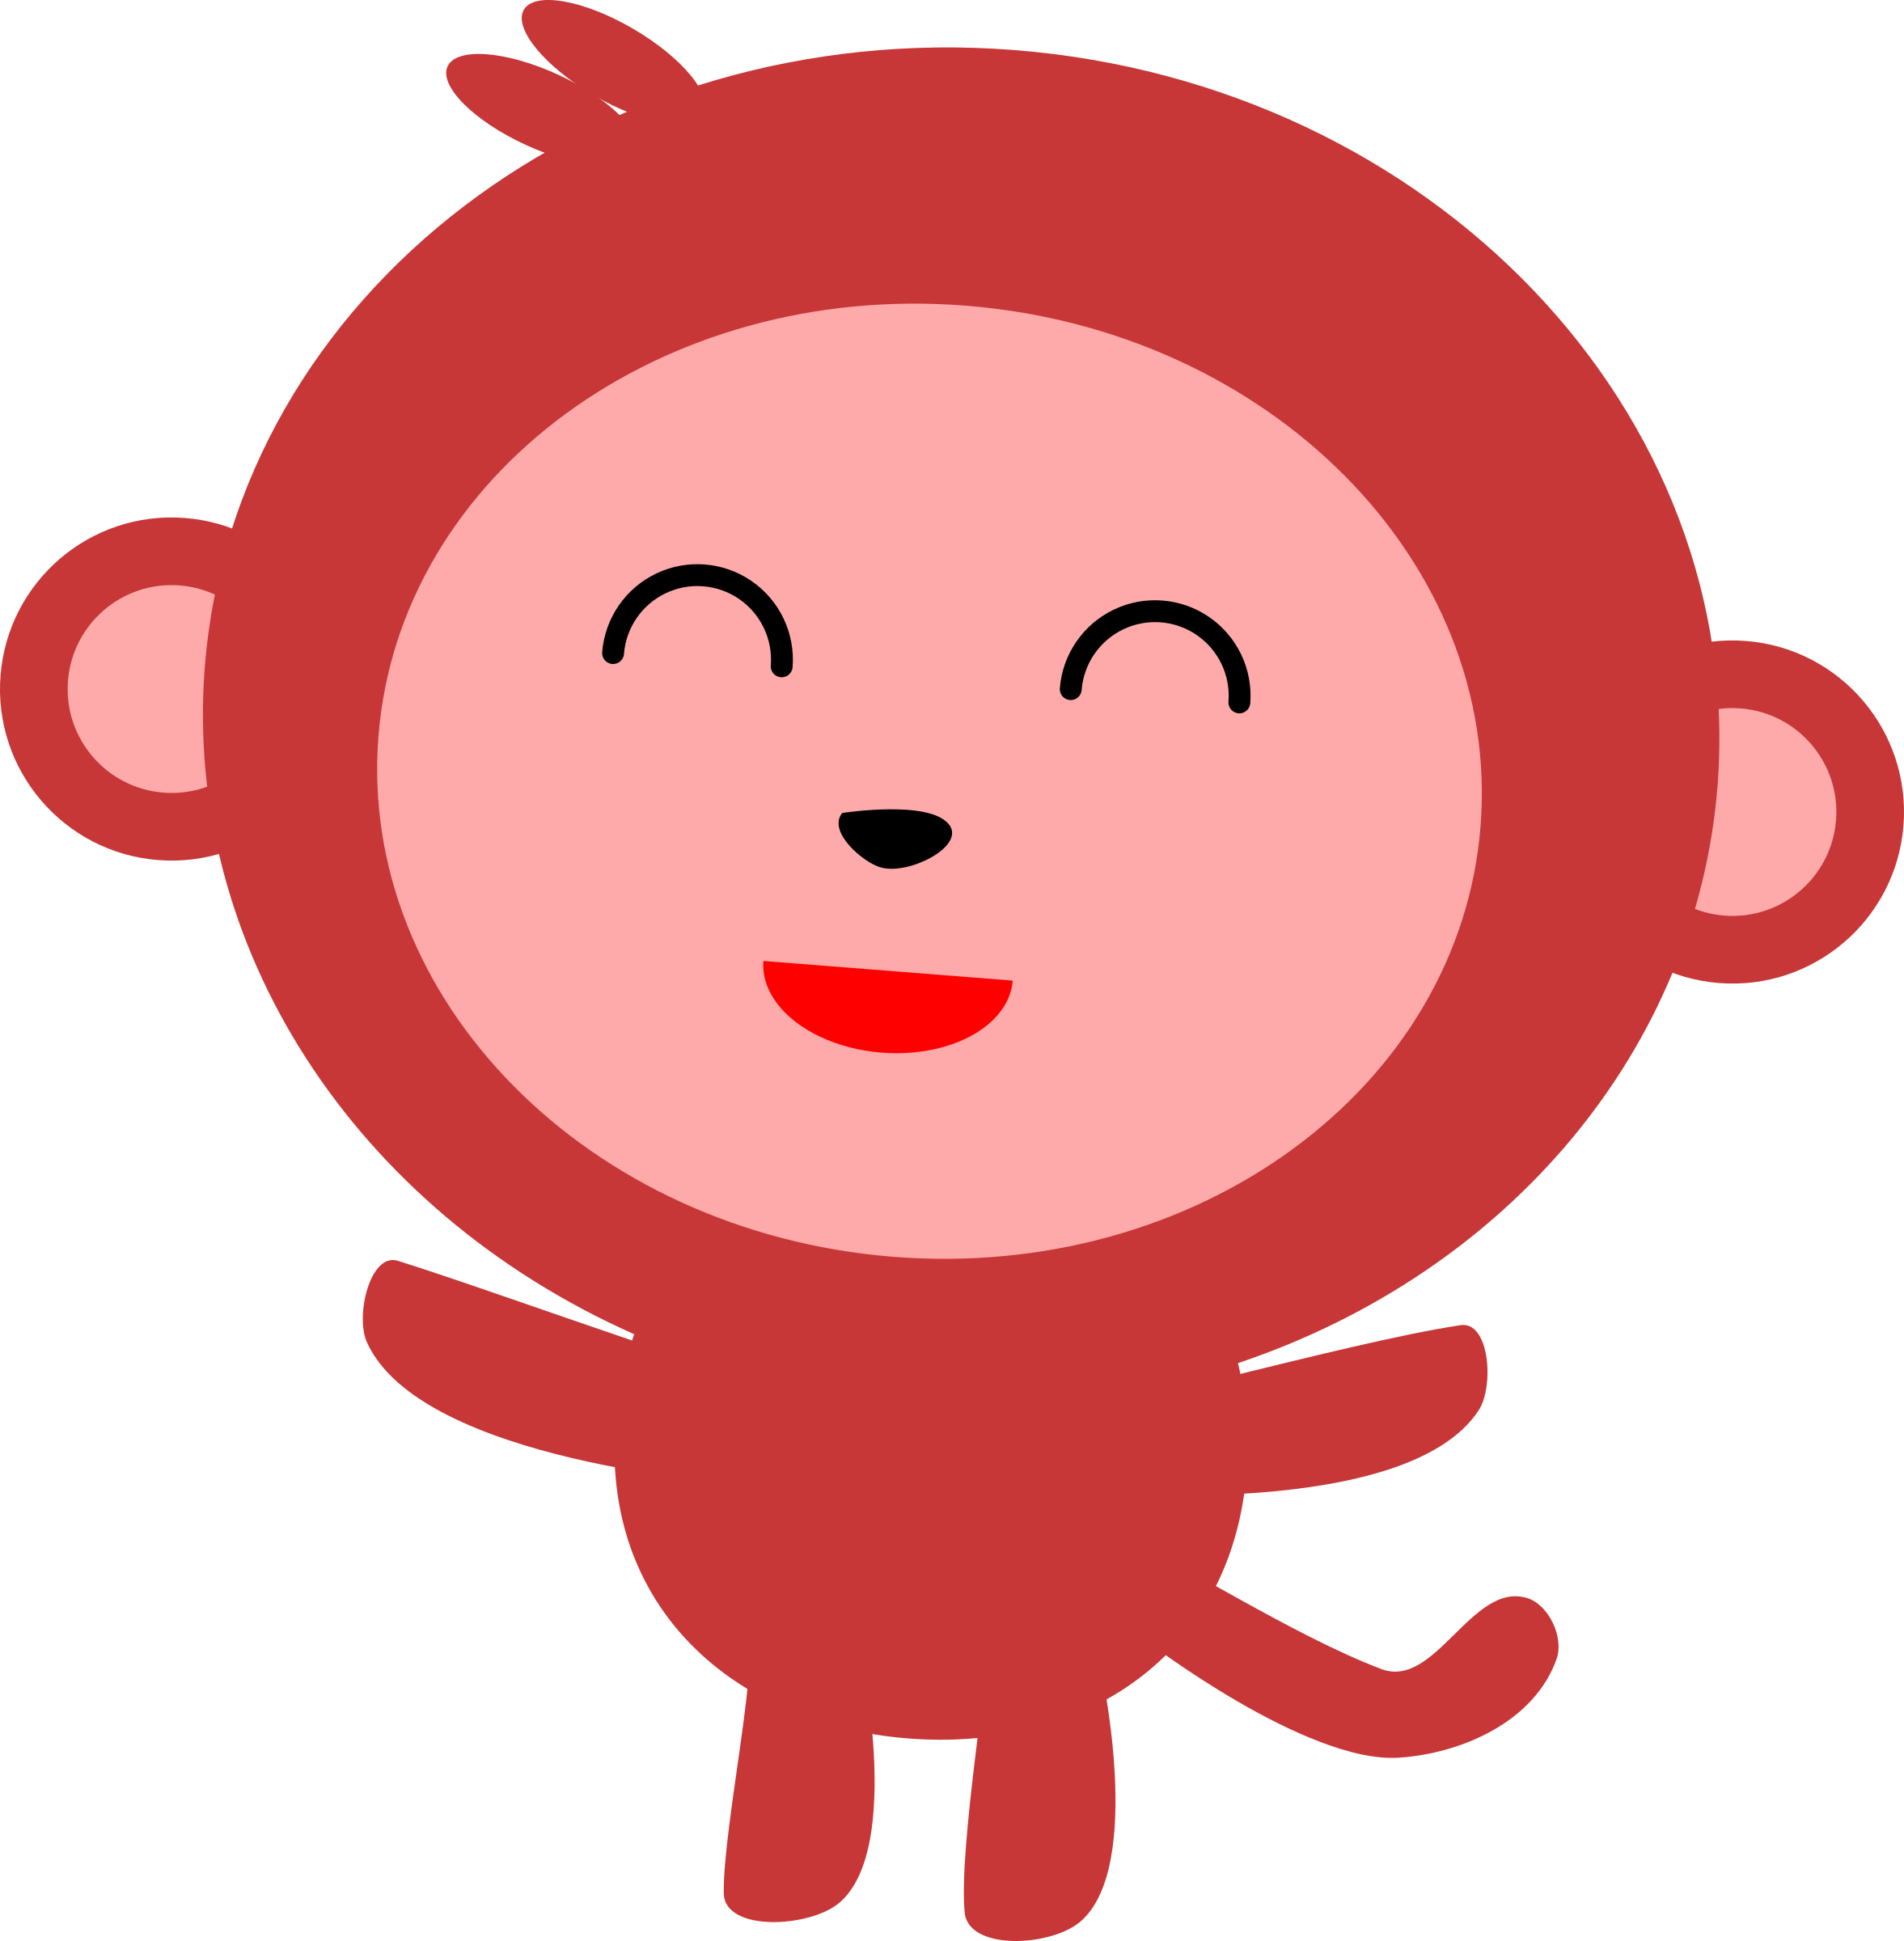 Big image png. Monkey clipart simple